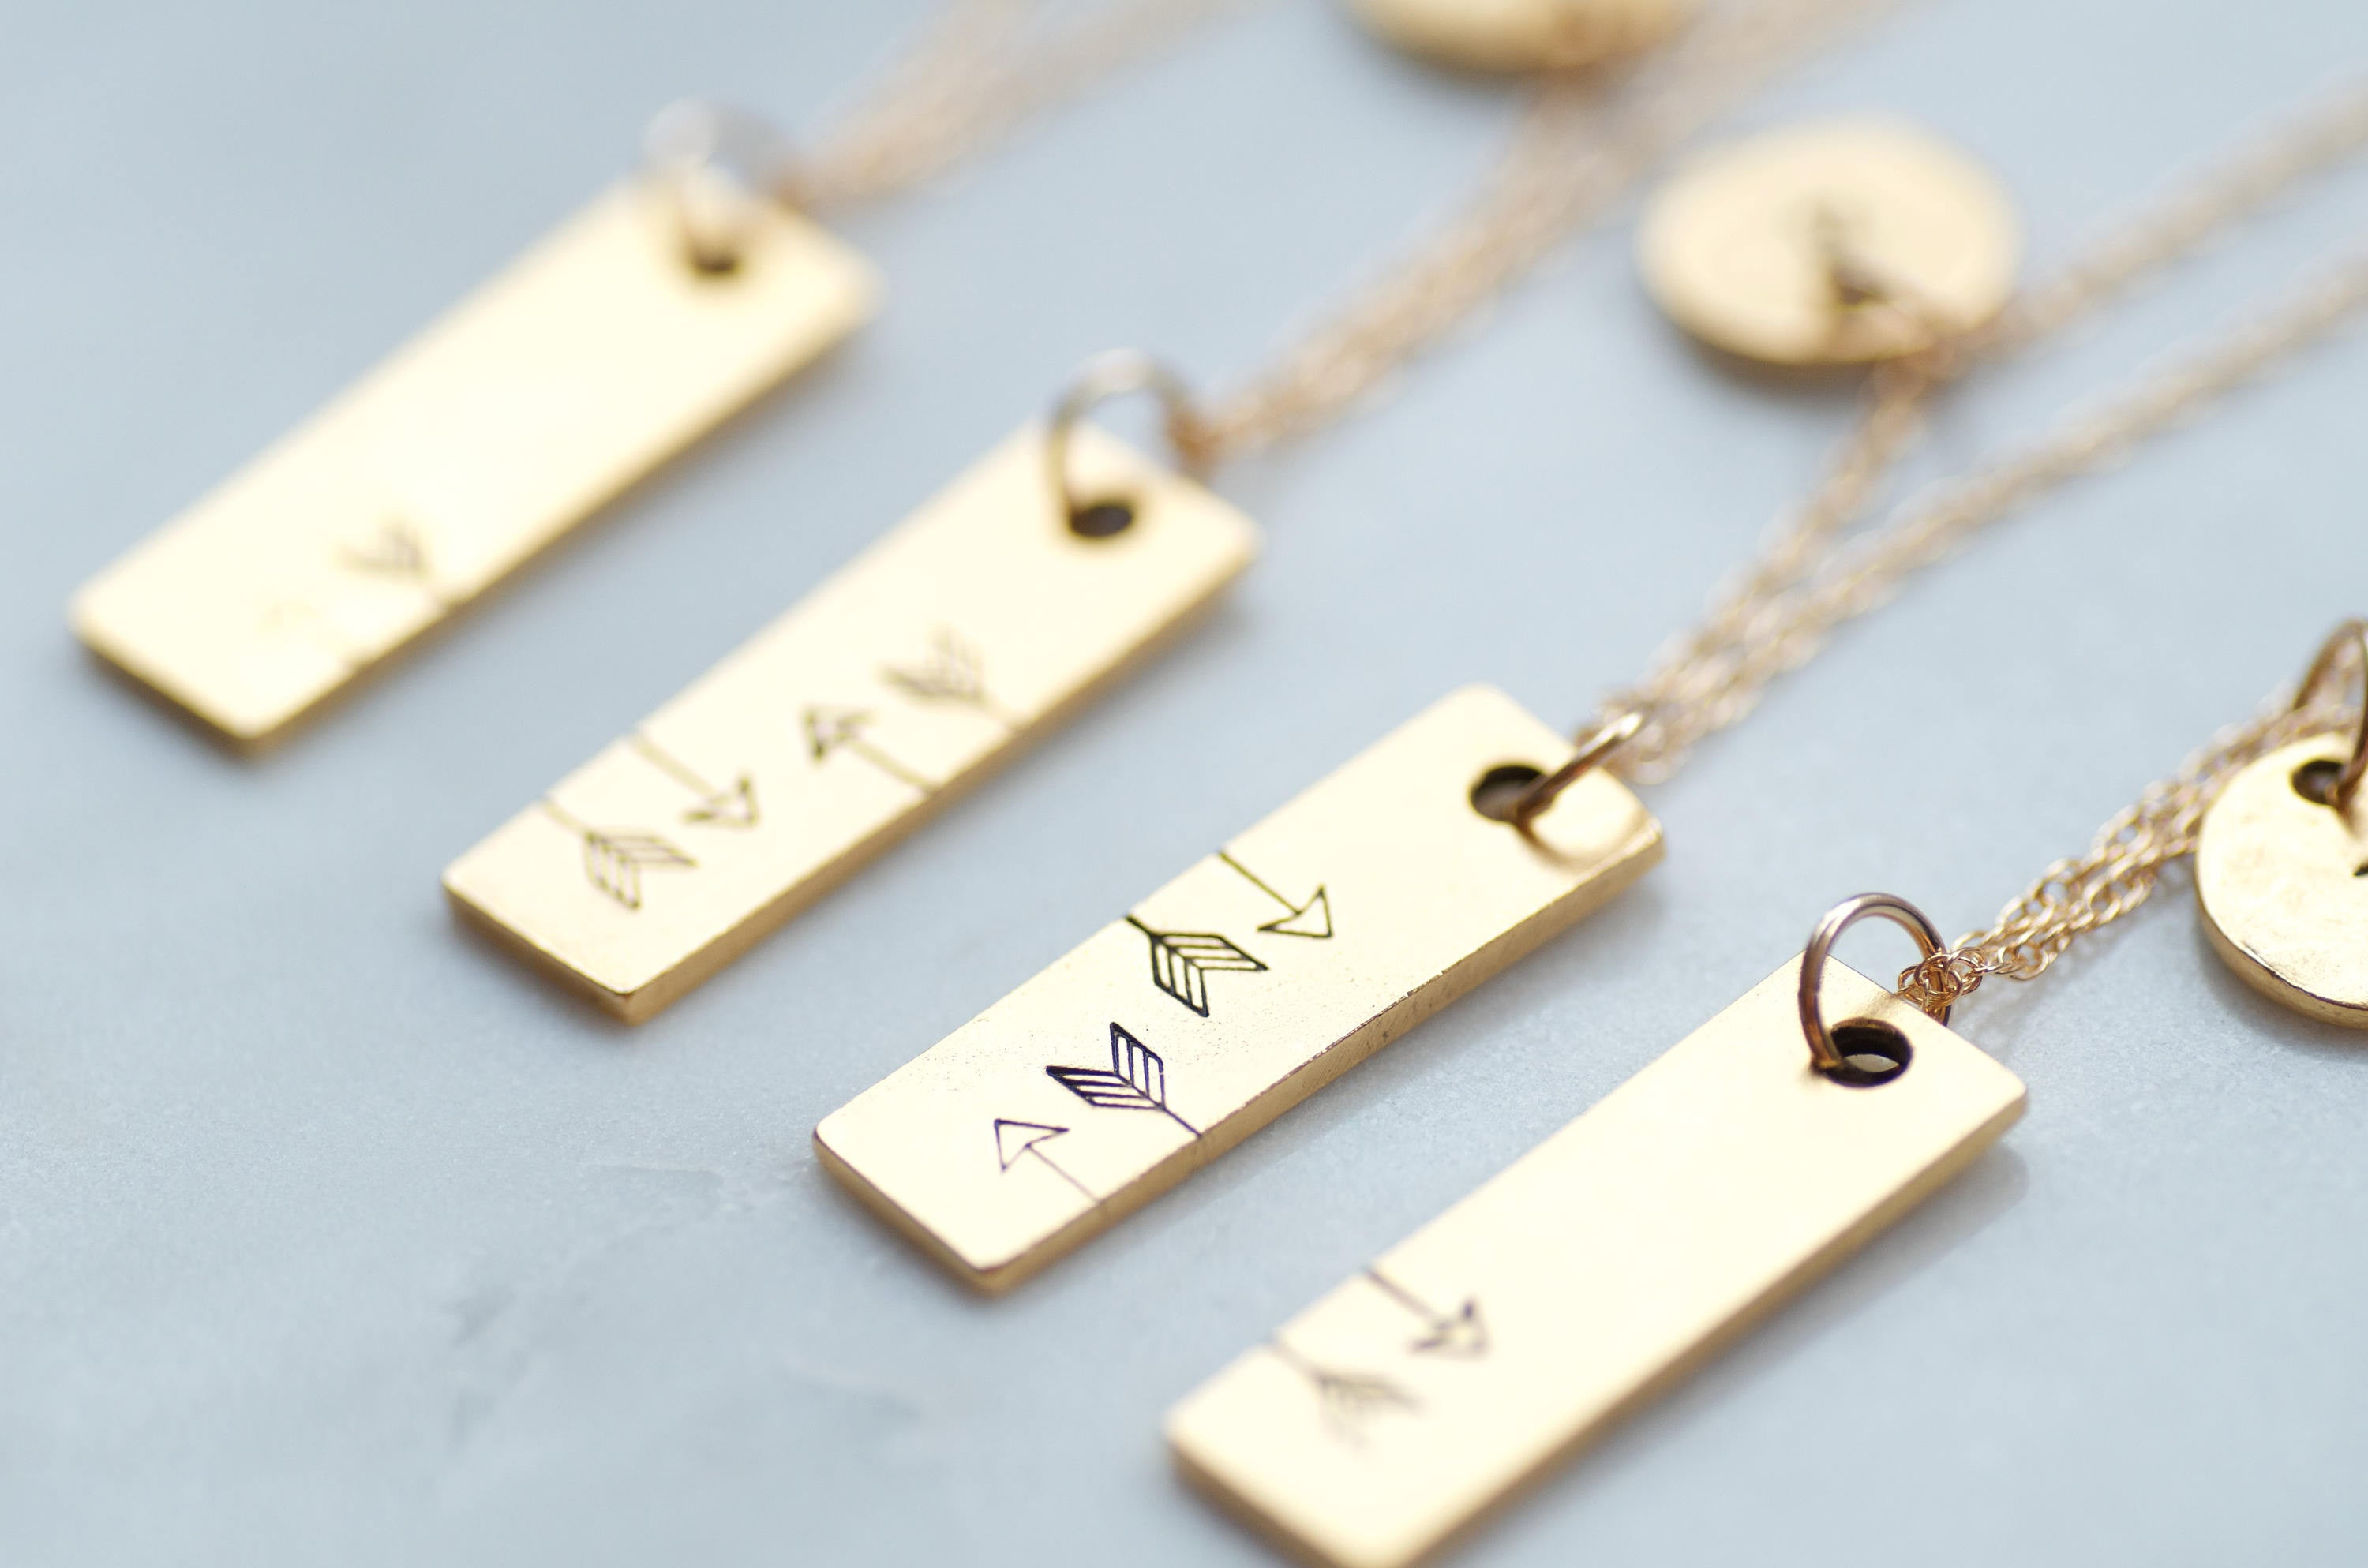 Friendship Necklaces for 4 by Olive Bella.  Shop now: https://olivebella.com